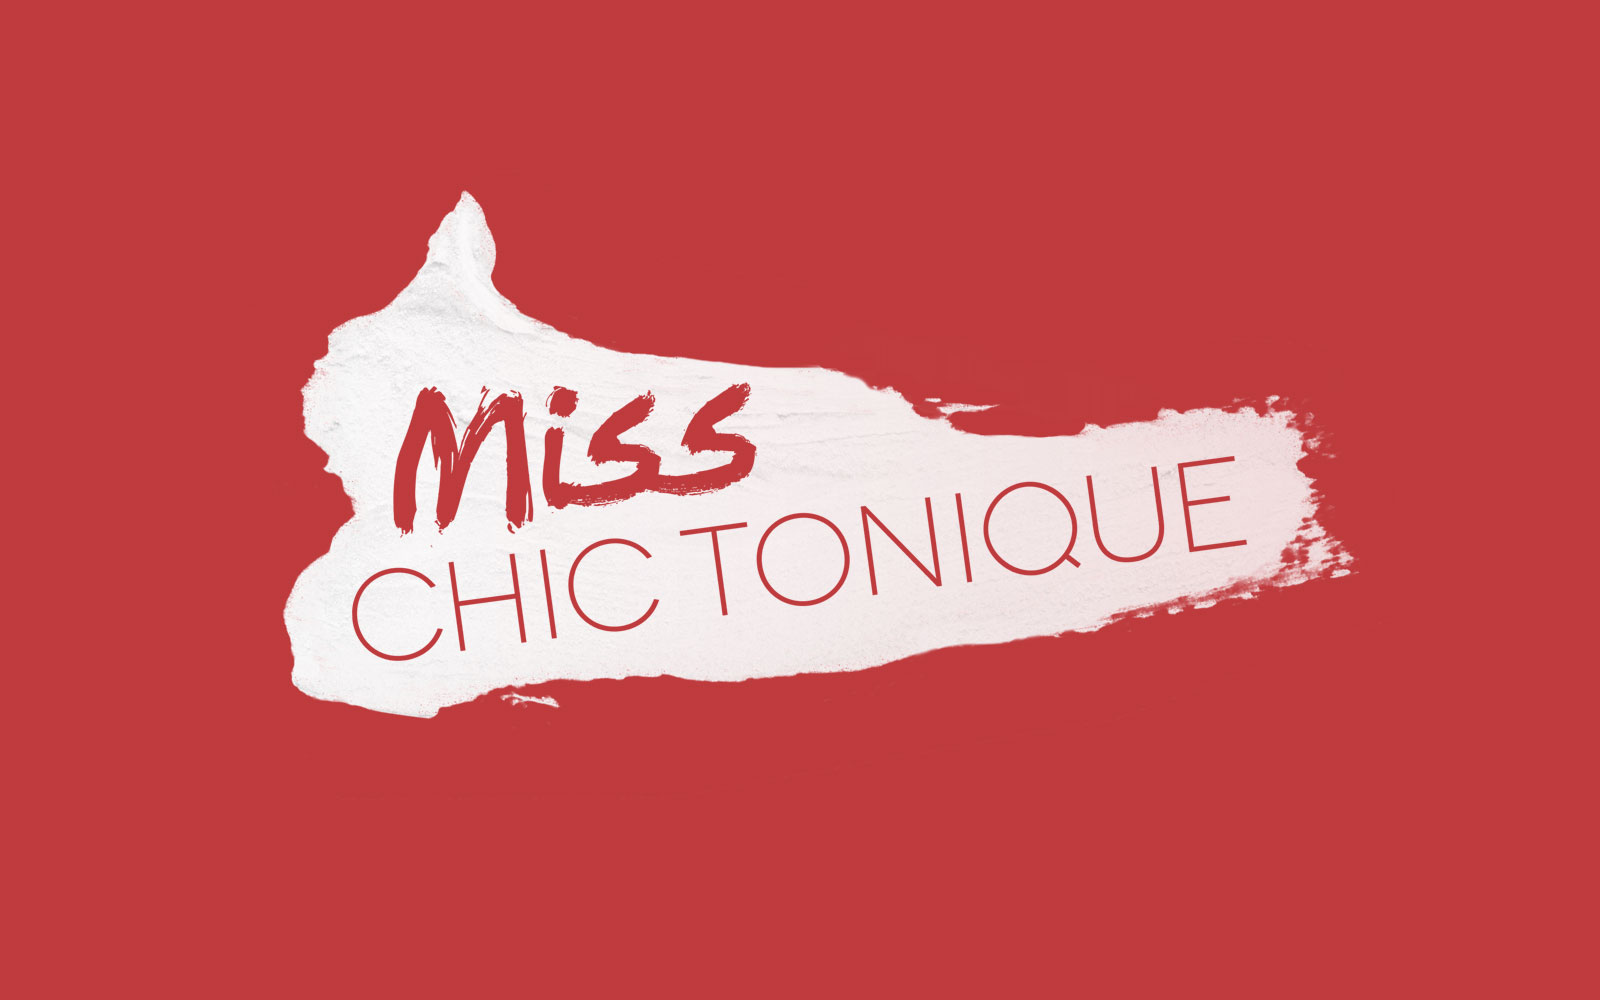 Miss chic tonique